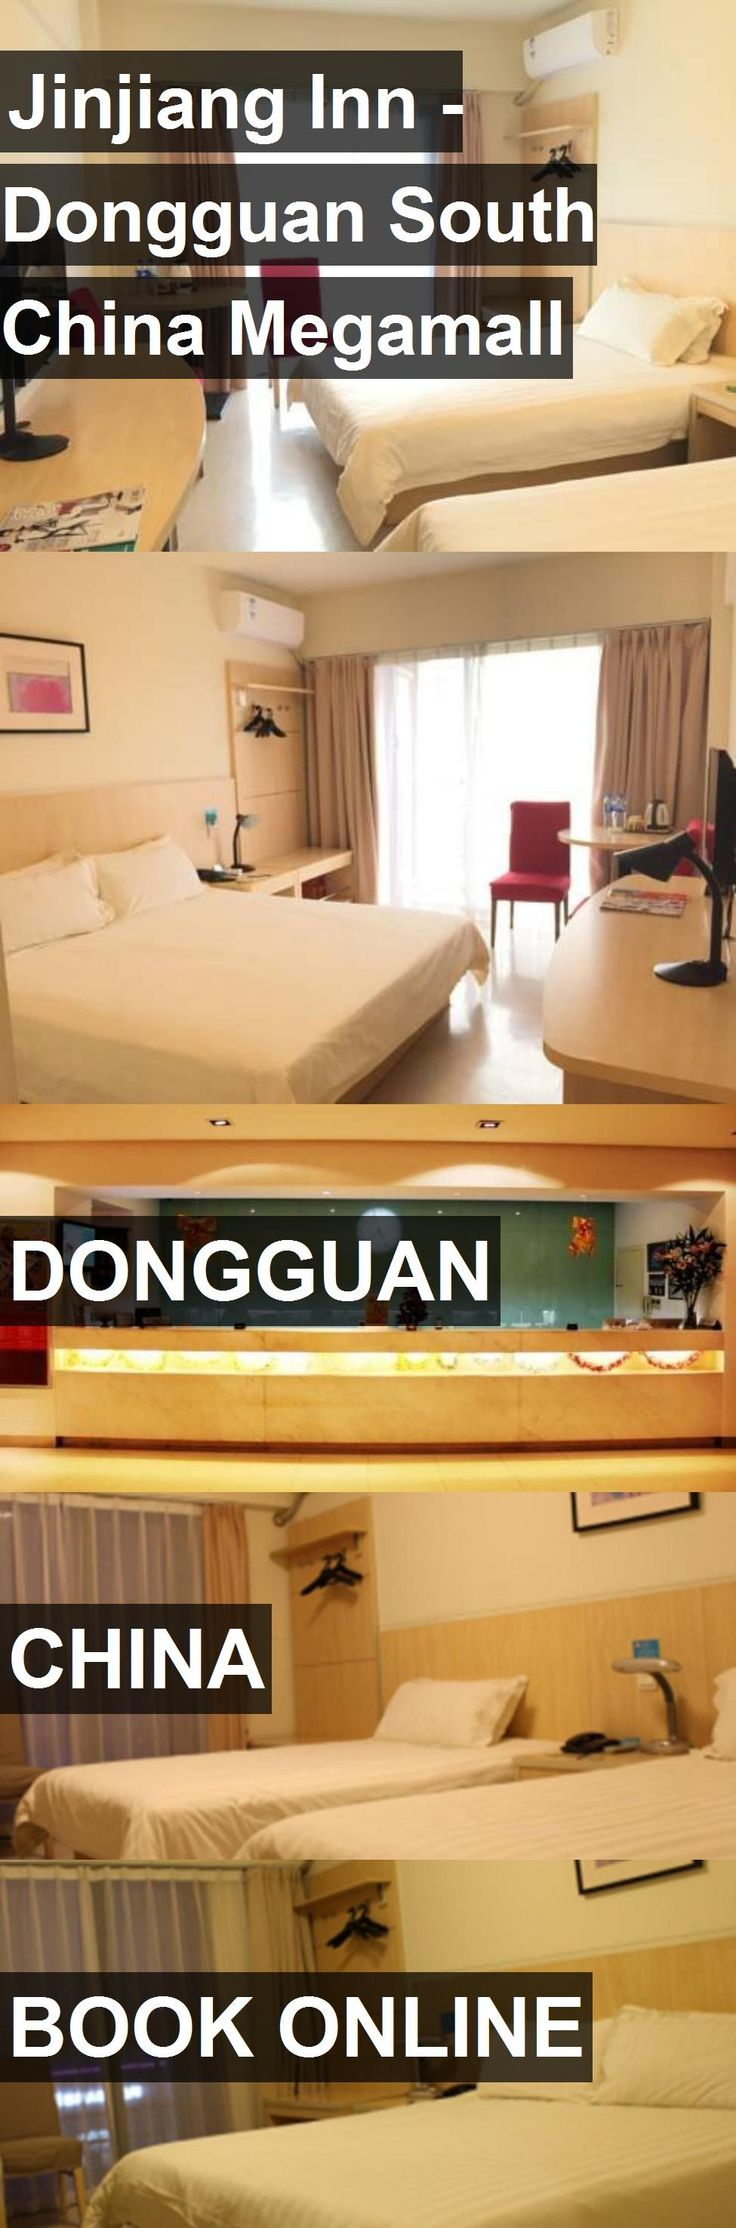 Hotel Jinjiang Inn - Dongguan South China Megamall in Dongguan, China. For more information, photos, reviews and best prices please follow the link. #China #Dongguan #JinjiangInn-DongguanSouthChinaMegamall #hotel #travel #vacation